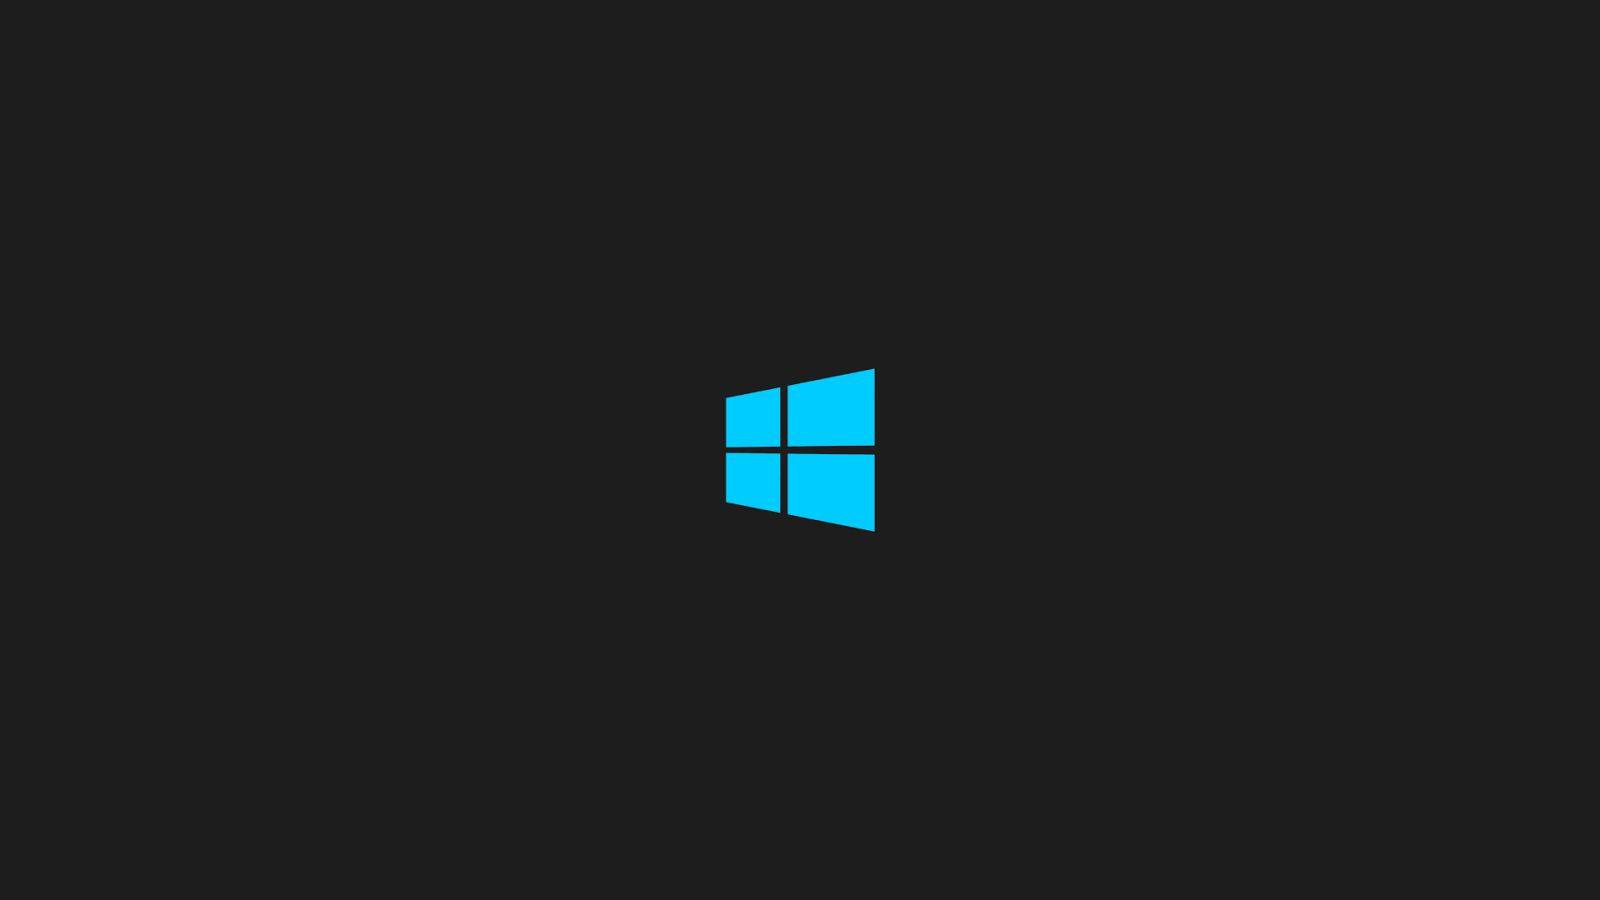 Windows 8 Wallpaper Set 10 - 2013 Wallpapers